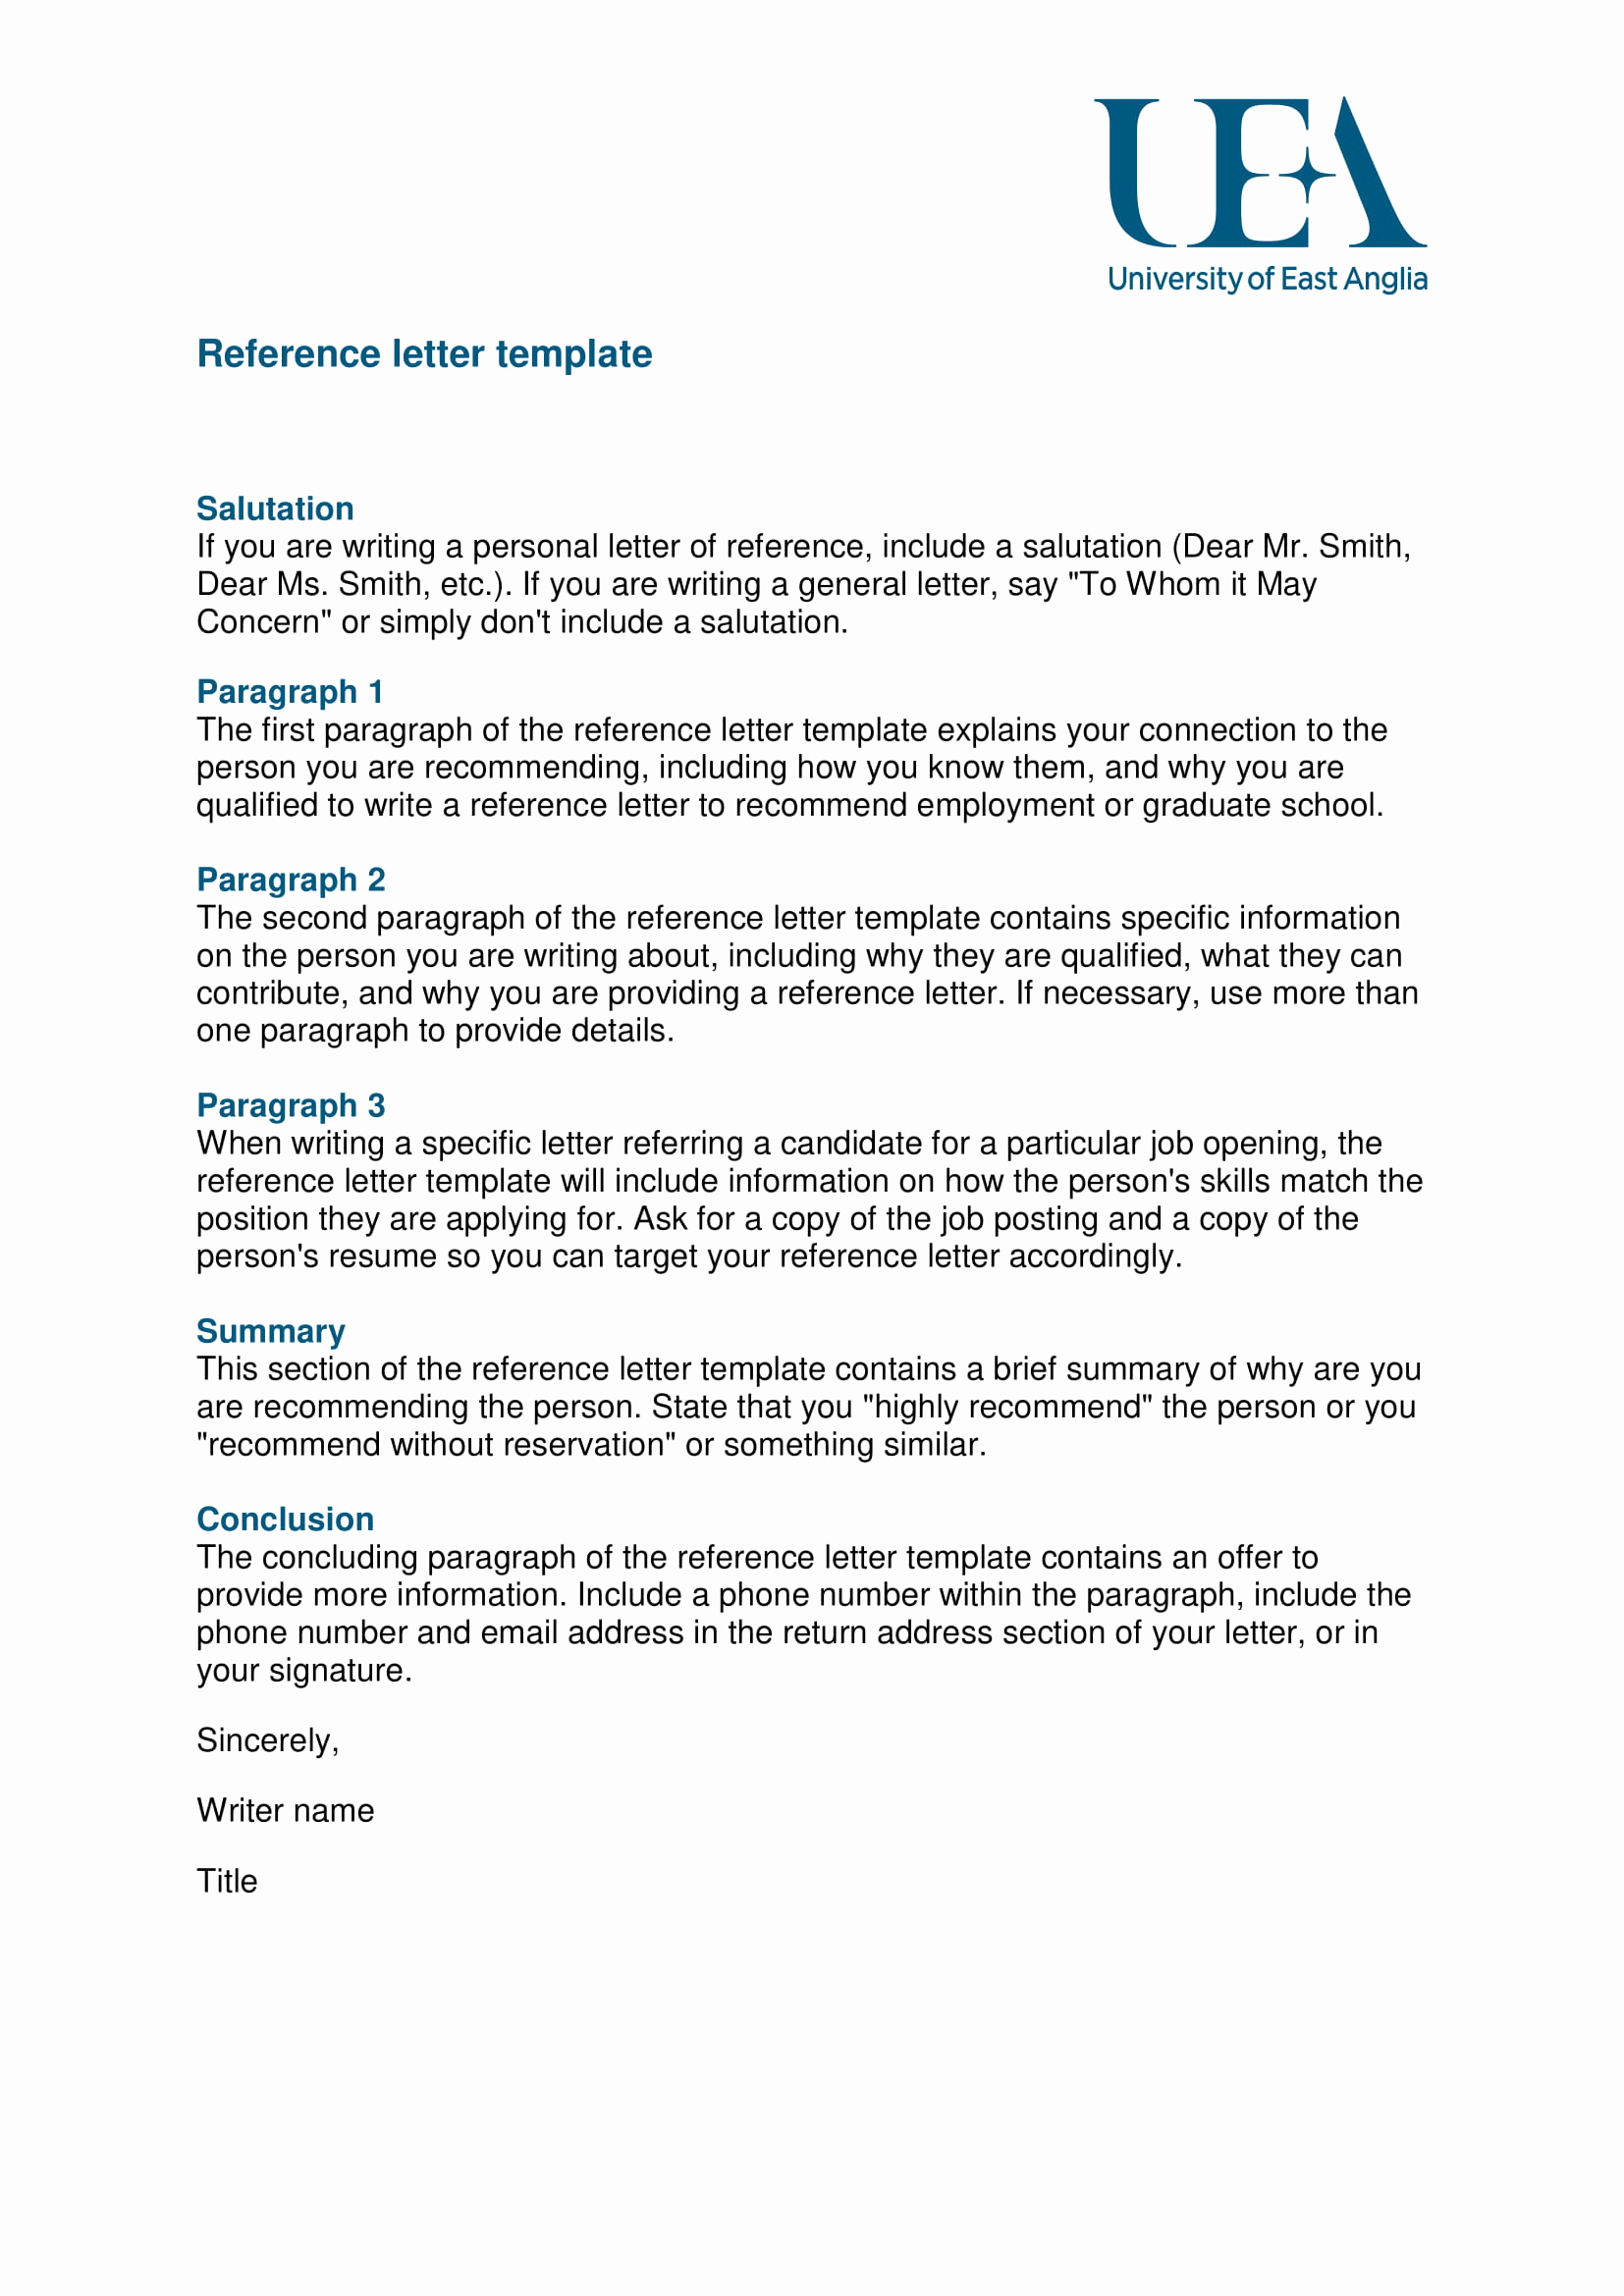 Reference Letters From Employers Fresh 9 Reference Letter From A Previous Employer Examples